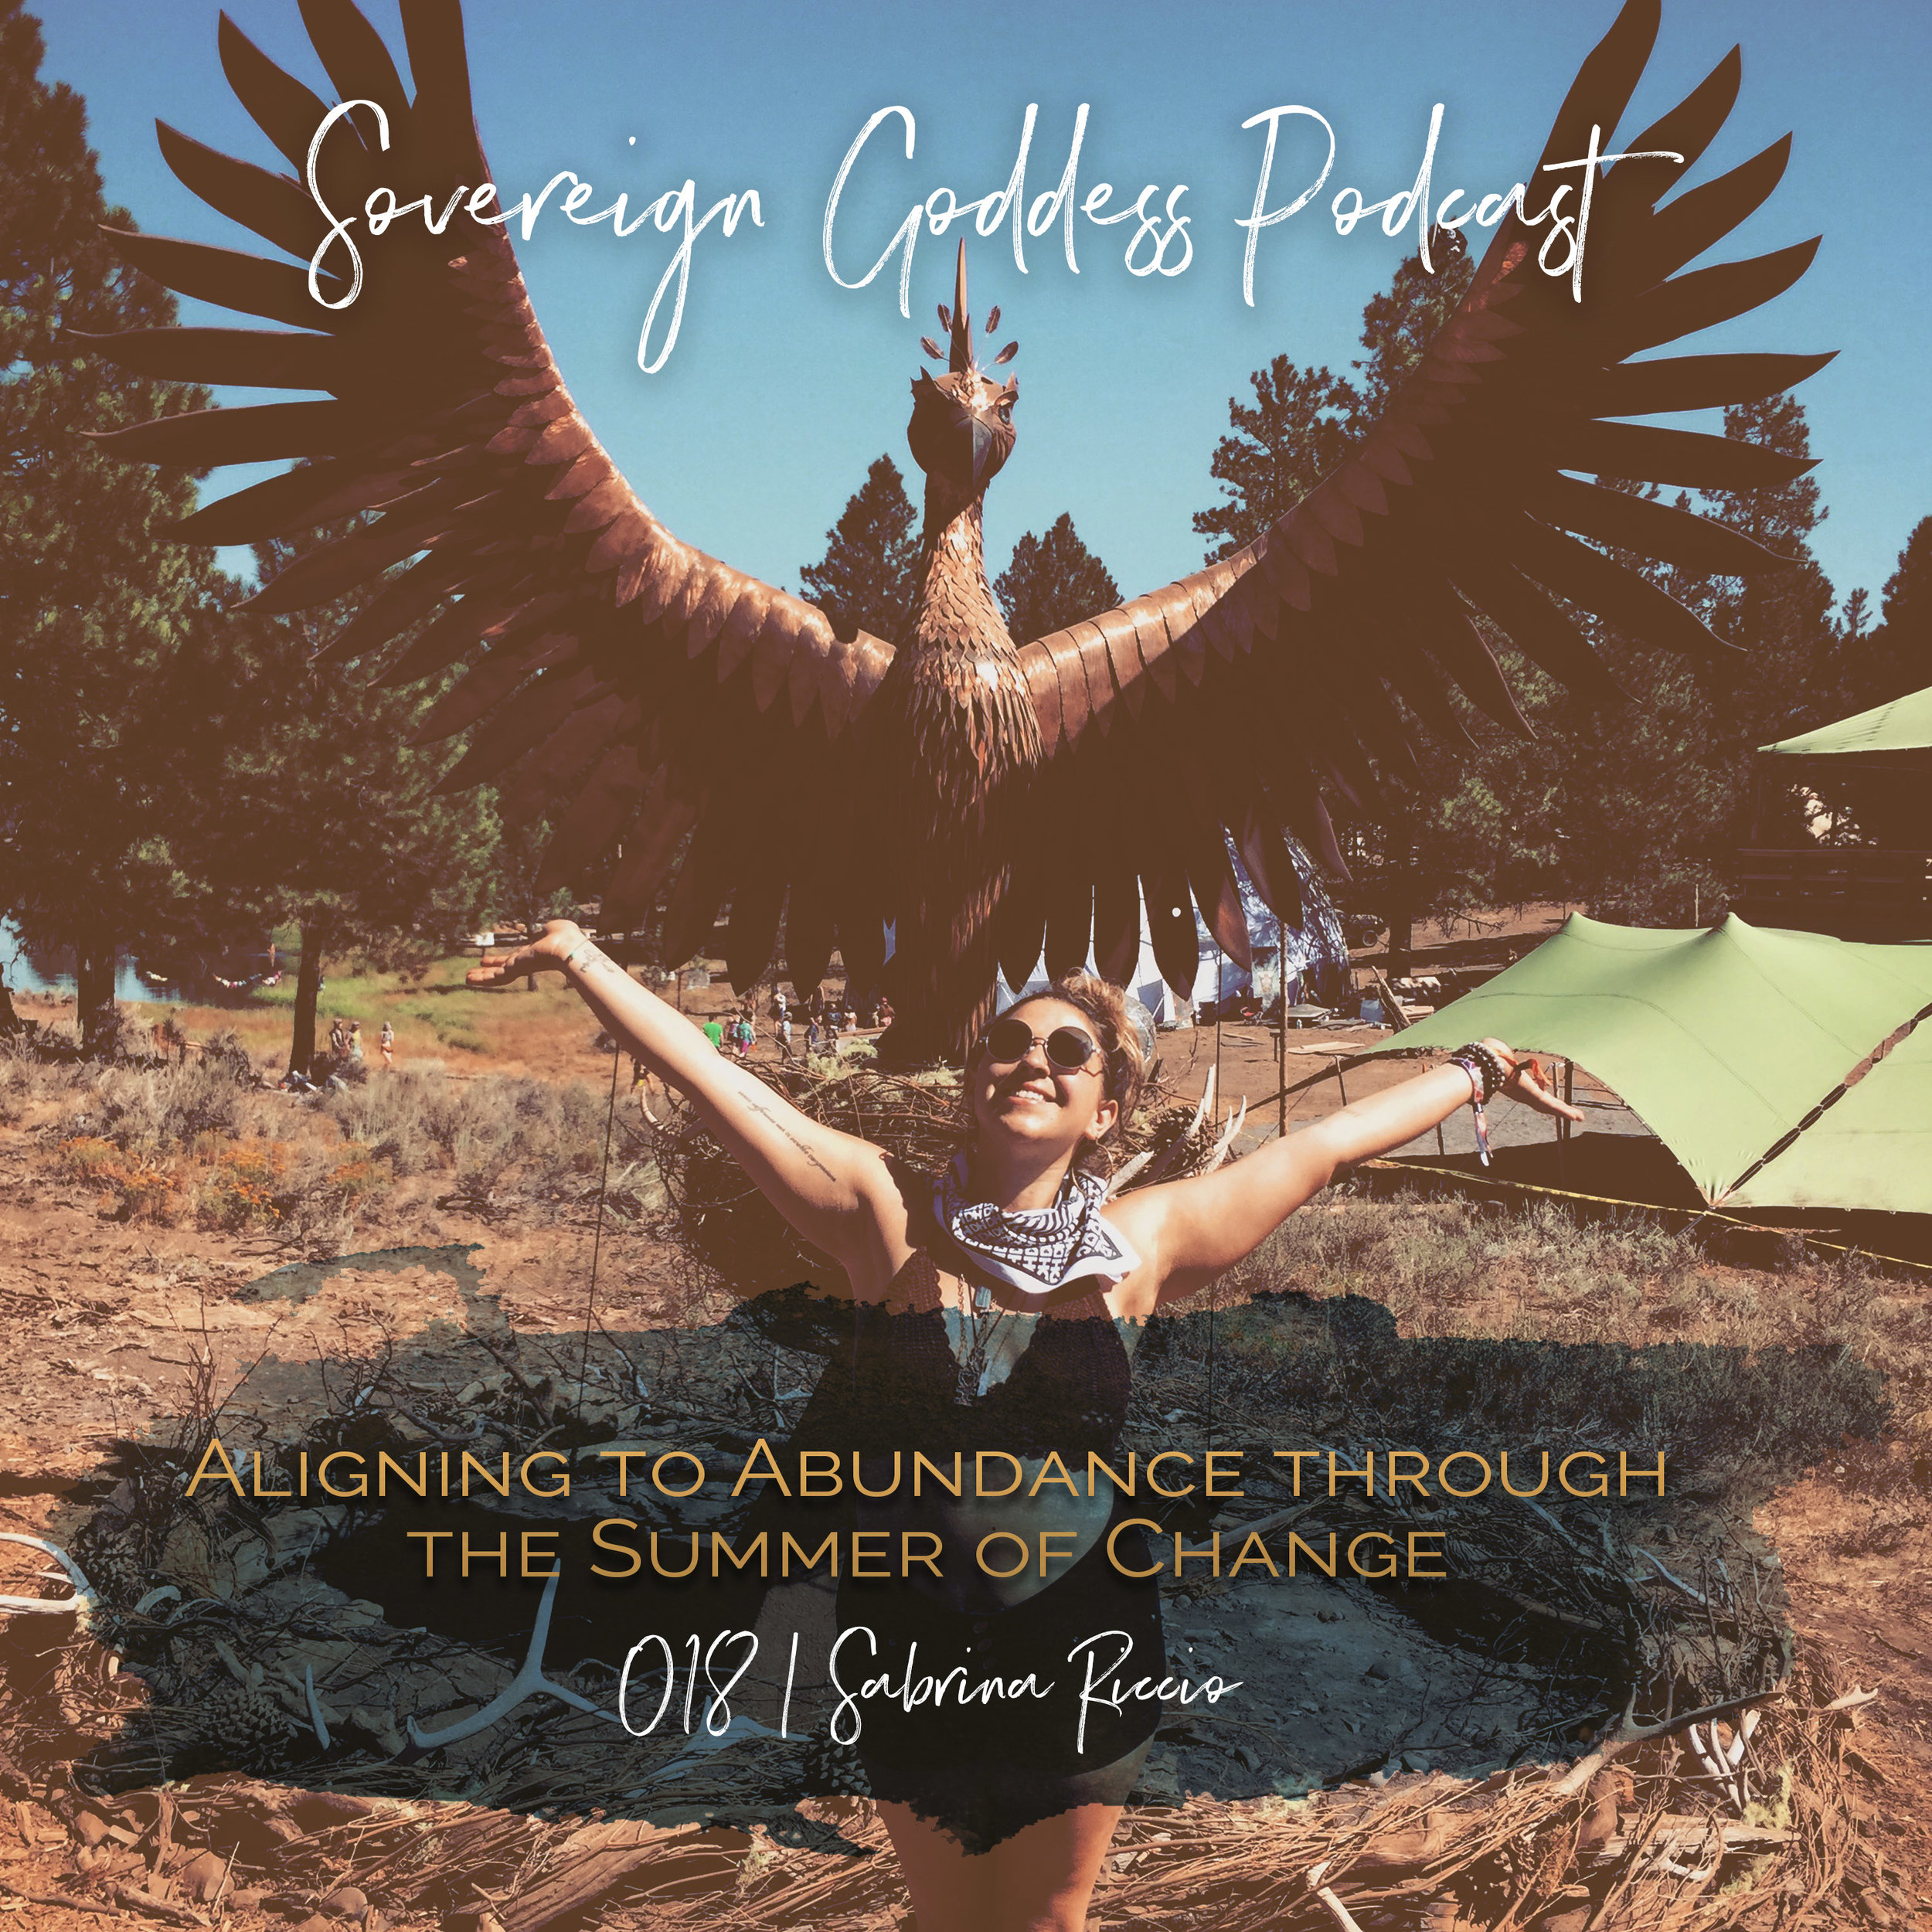 Sovereign Goddess Podcast chapter 018 Aligning to Abundance through the Summer of Change